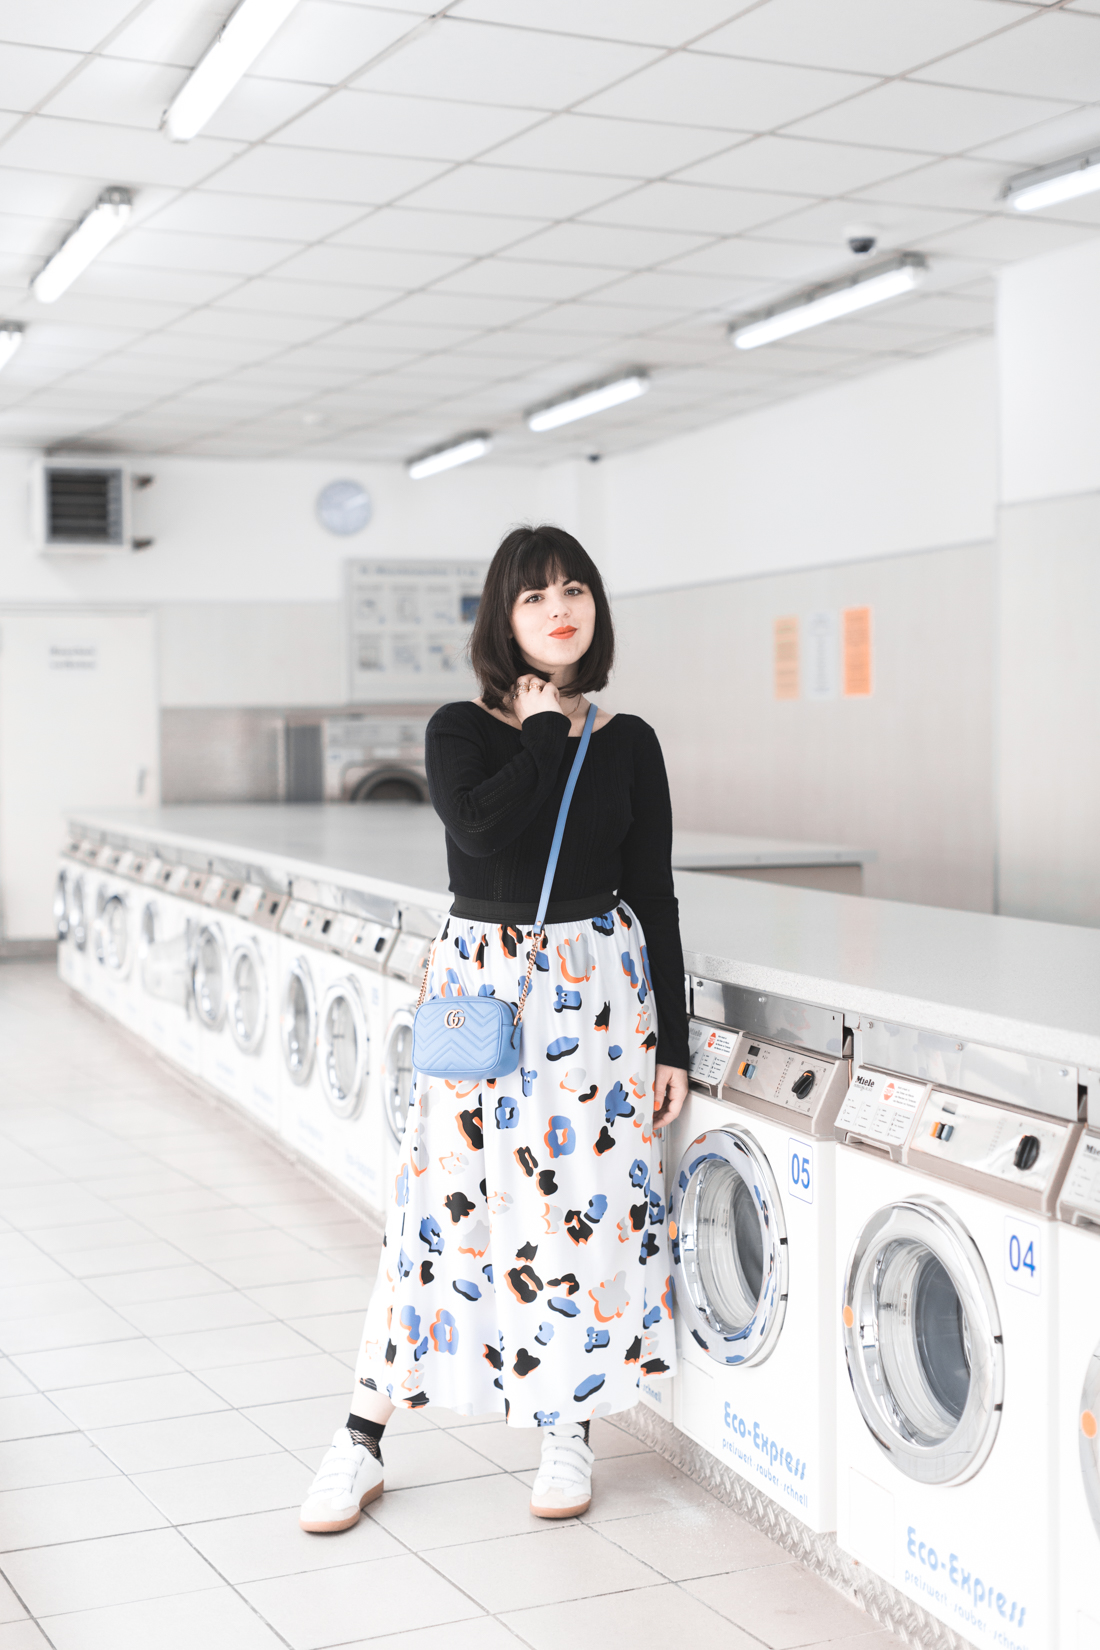 ariel_giles_deacon_blogger_laundromat_photoshoot_copyright_Pauline_Privez_paulinefashionblog_com-2